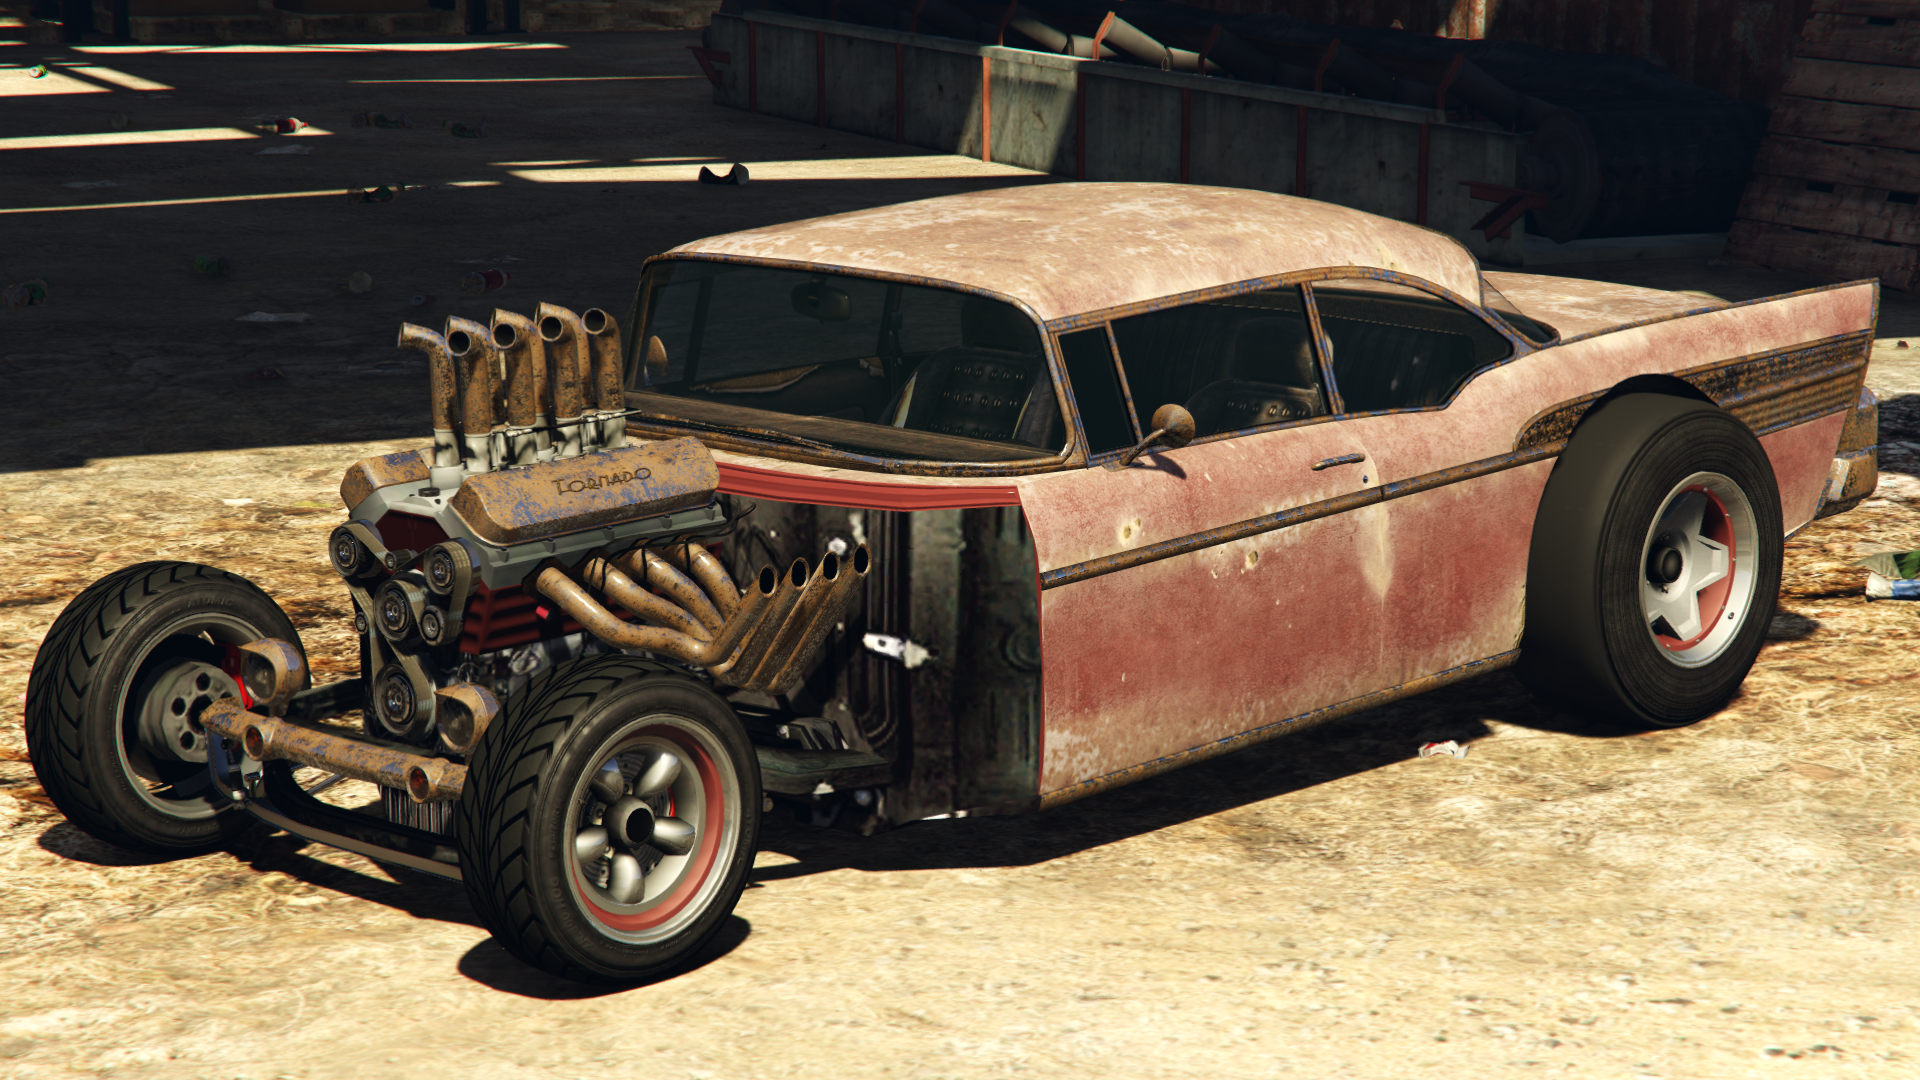 Tornado Rat Rod V Gta Wiki Fandom Powered By Wikia